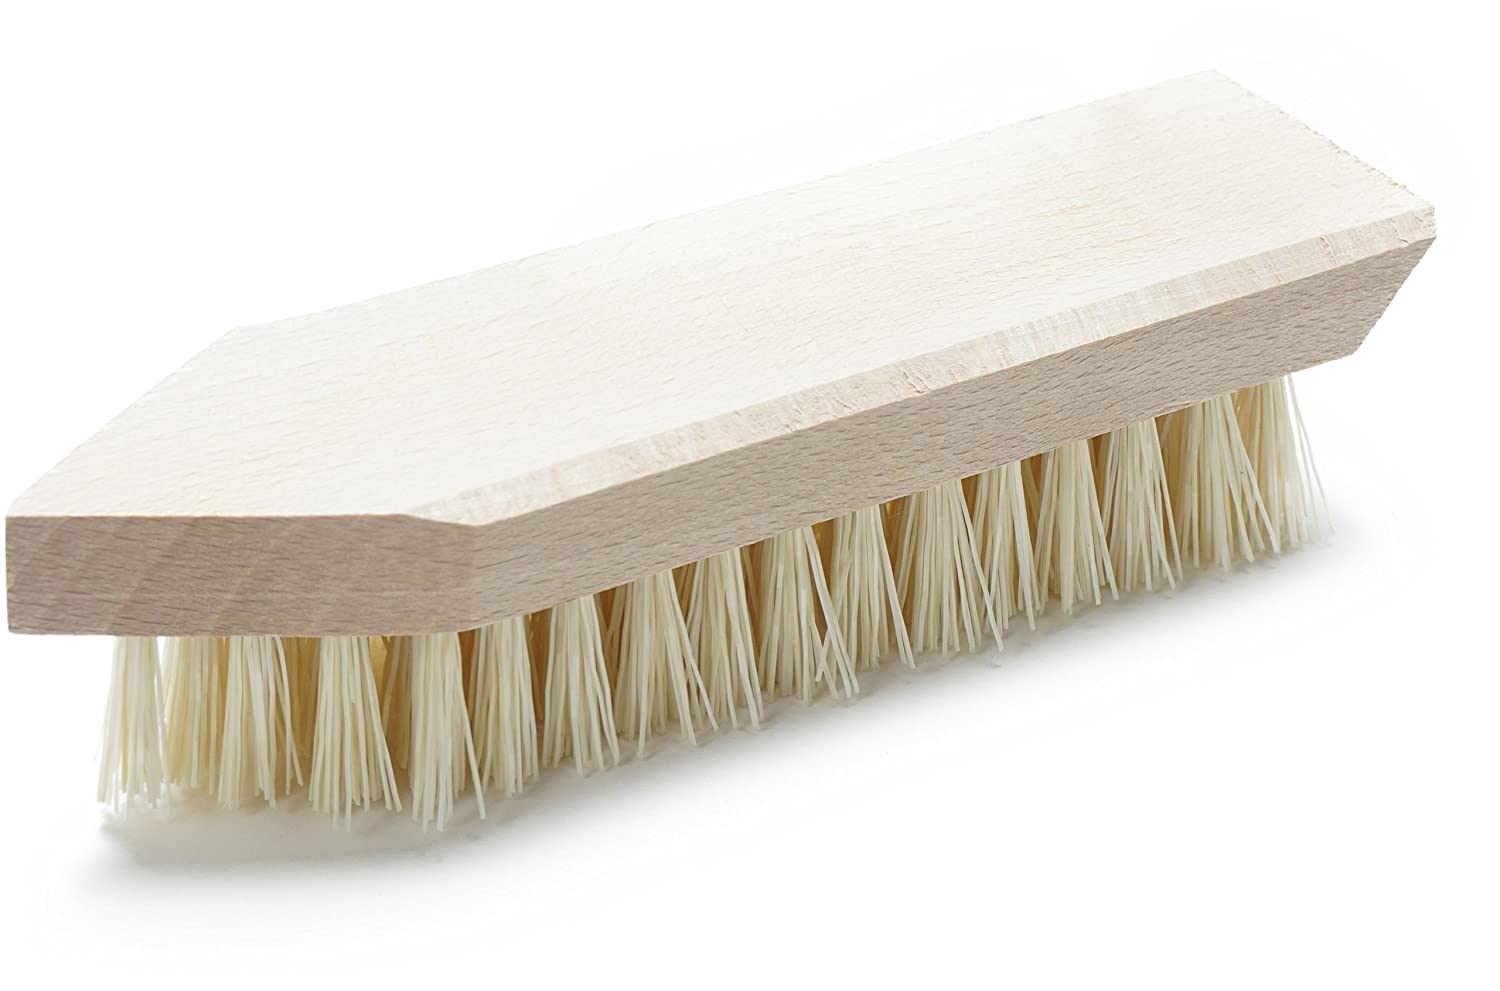 Konex Fiber Economy Utility Cleaning Brush. Heavy Duty Scrub Brush With Wood Handle. (Peanut shaped) AX-AY-ABHI-96344